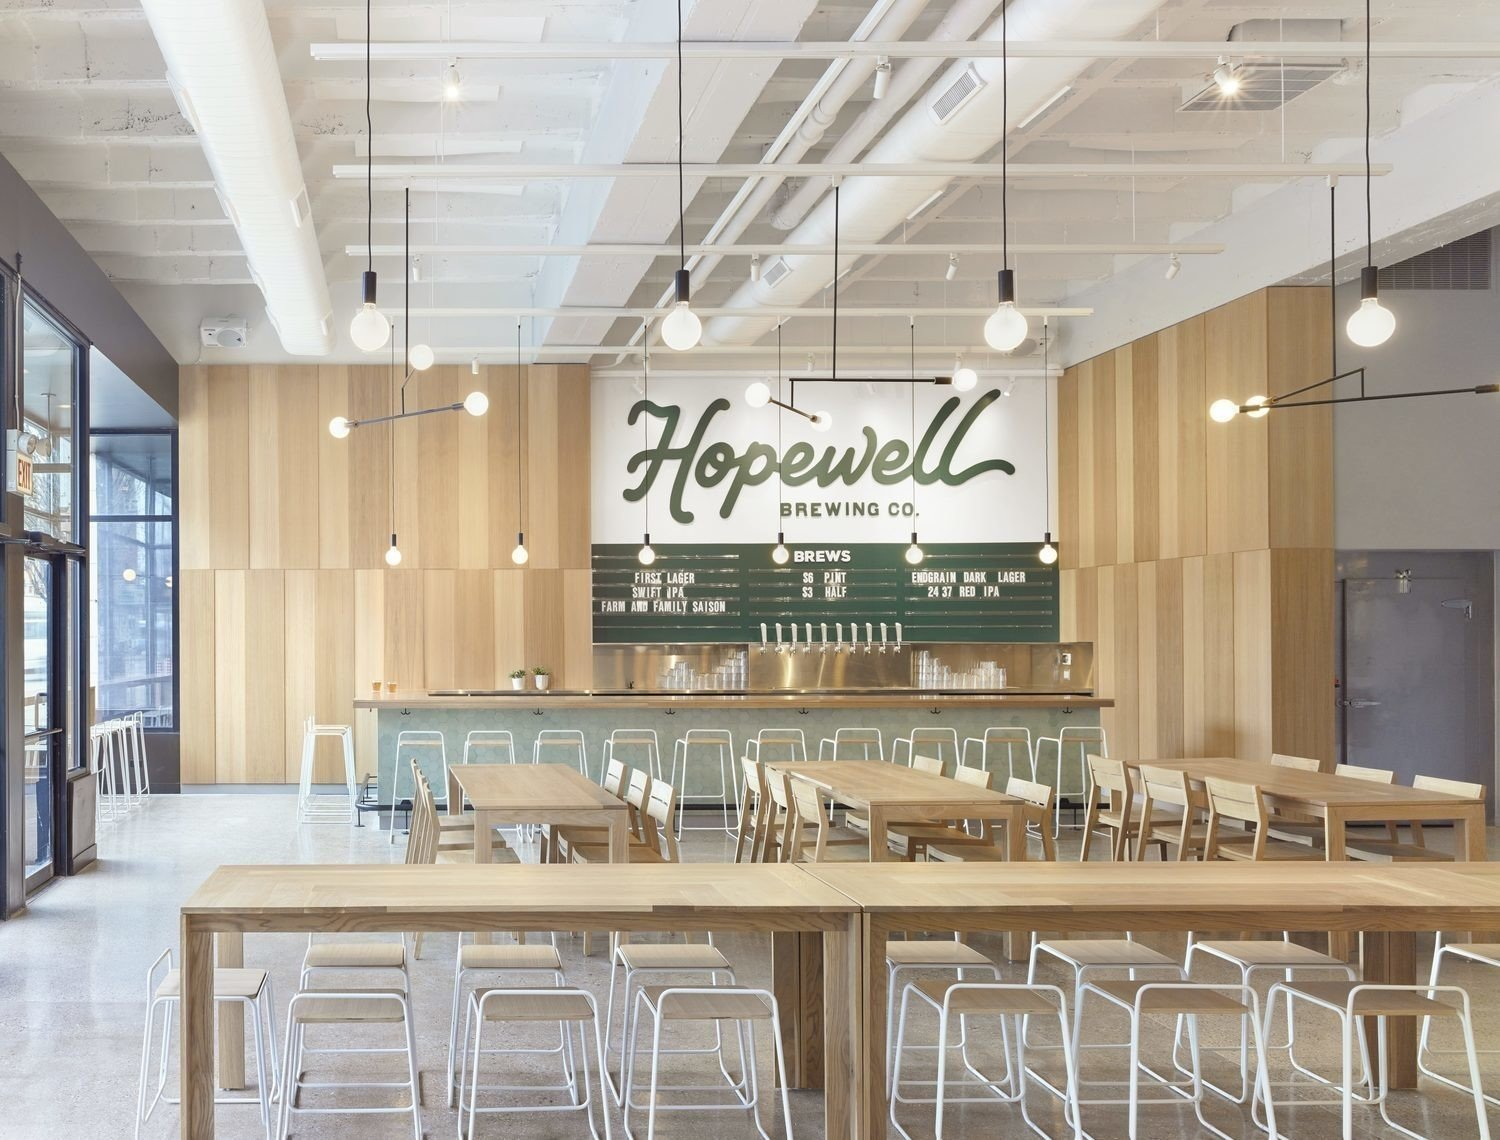 In the American midwest, Hopewell Brewing Co. manages to channel multiple styles at once. The signage has an almost 1950s nostalgia about it, while the light fixtures are utterly modern and minimalistic.  Photo 4 of 12 in 10 Brewpubs That Have Tapped the Art of Modern Design